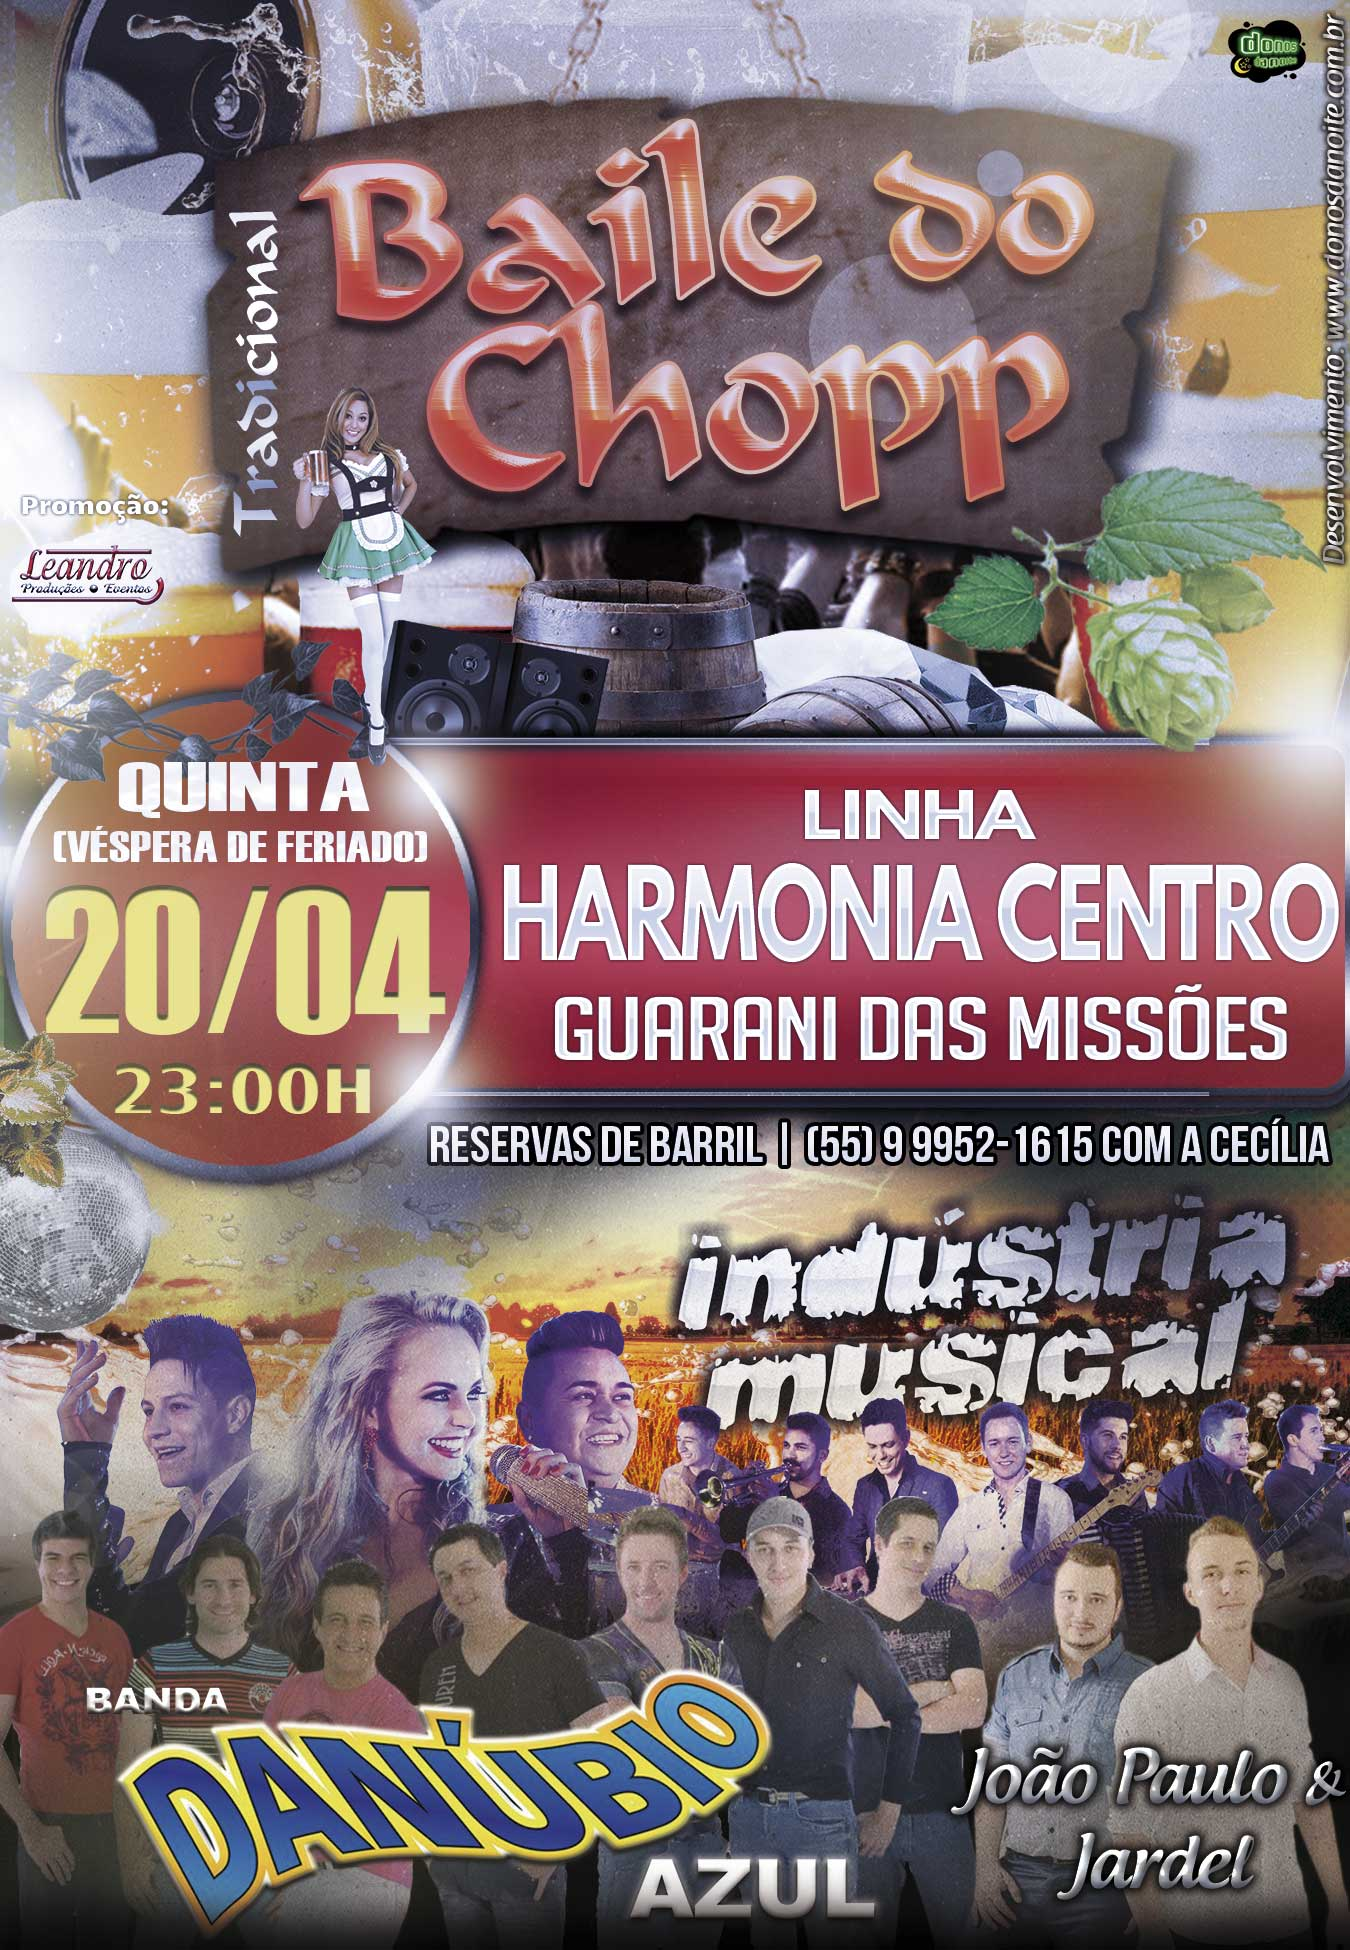 baile_do_chopp_harmonia_centro_20_04_17